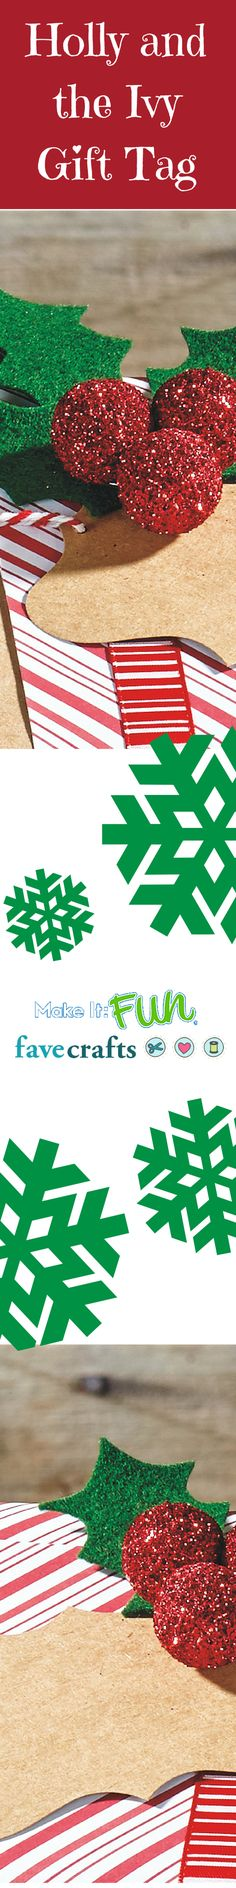 Deck your presents with holly gift tags this year! @makeitfuncrafts #FloraCraftChristmas